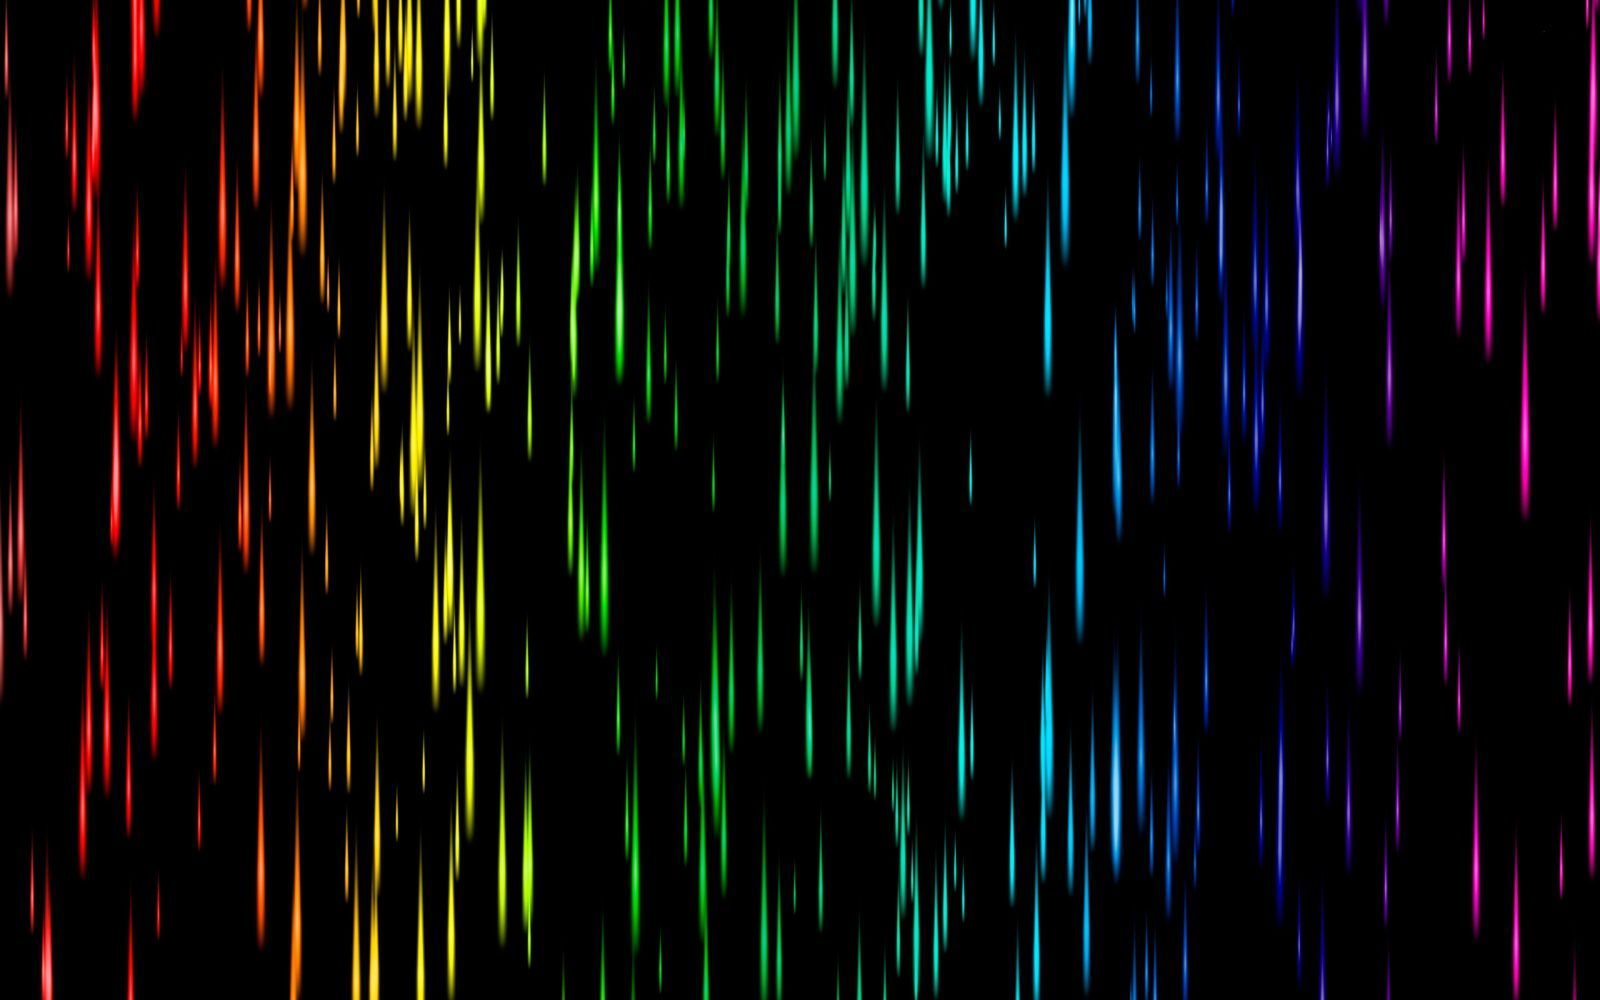 Abstract Wallpapers Hd Colorful Wallpaper Rain Wallpapers Blue